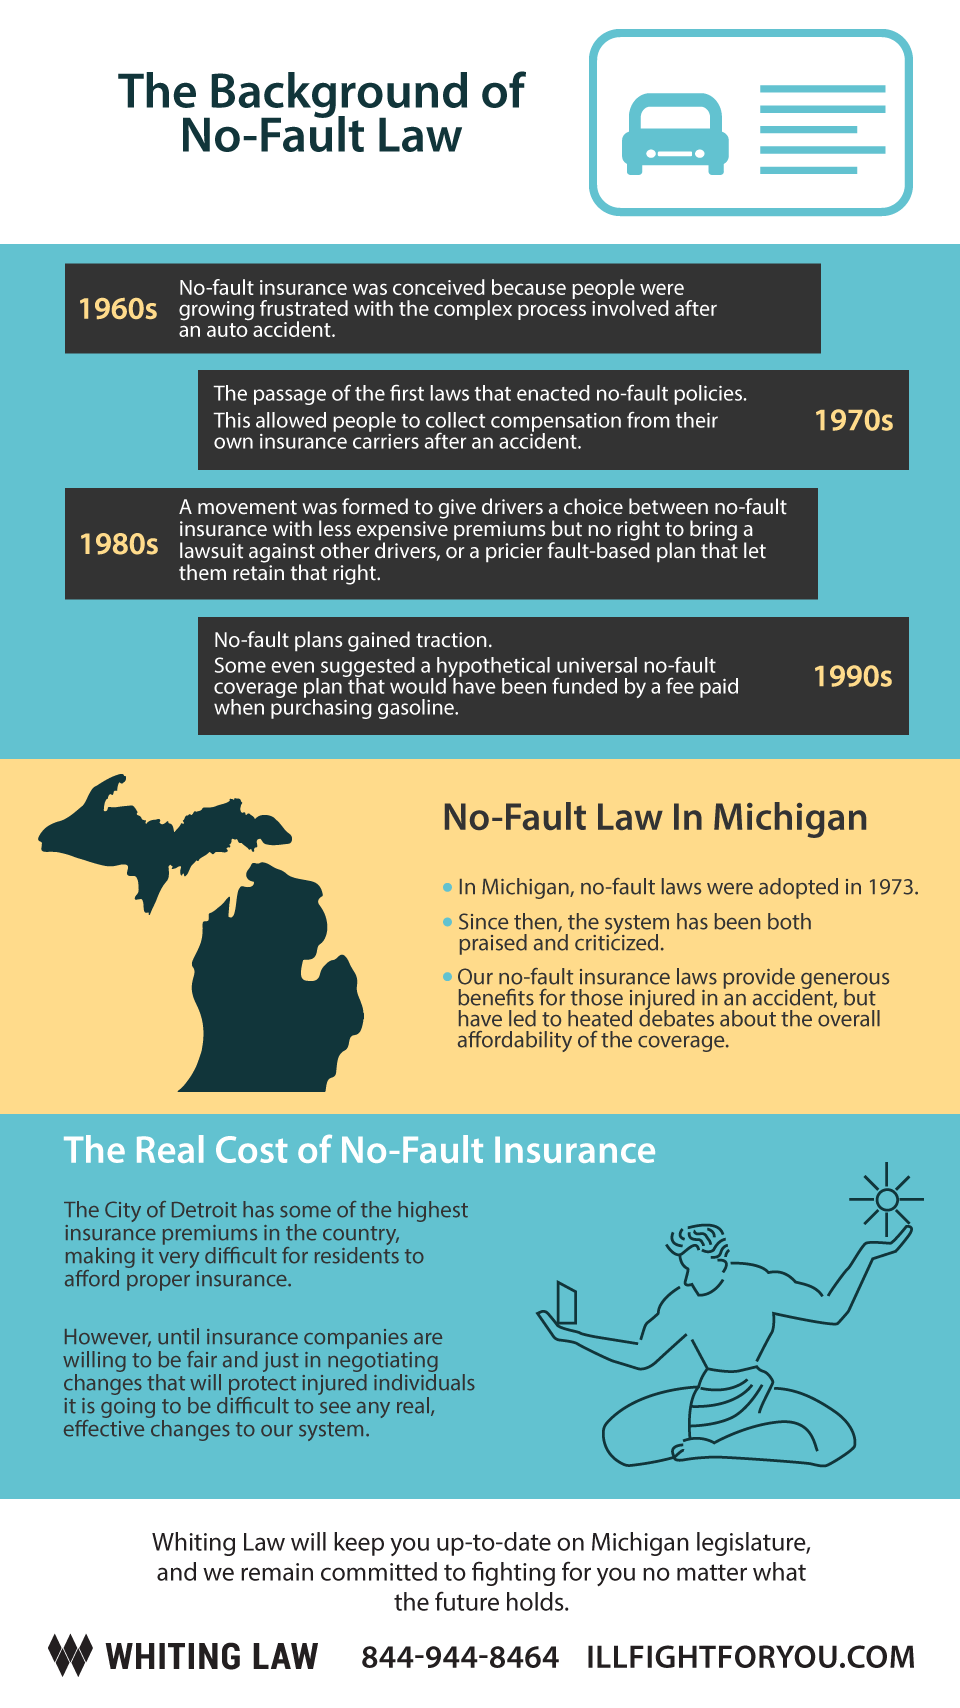 The Background of No-Fault Law